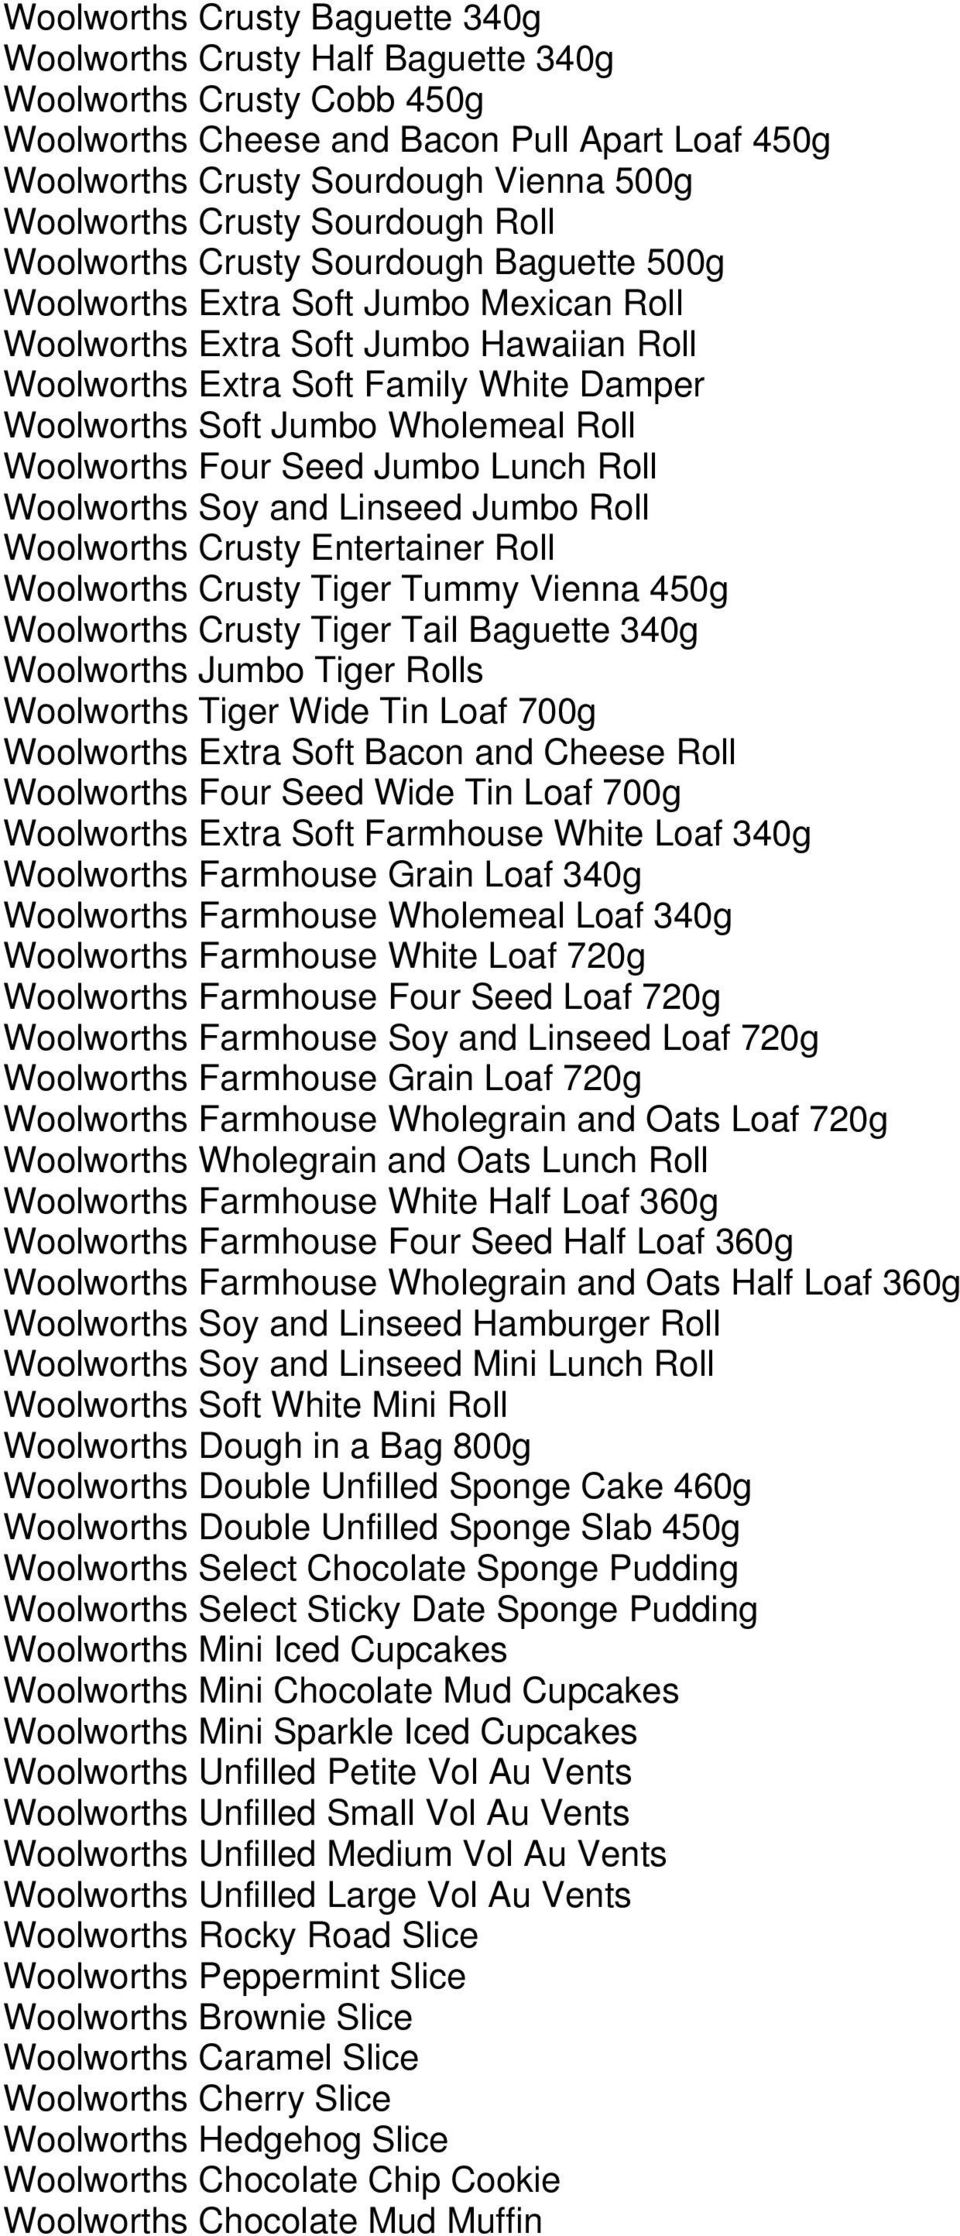 Woolworths Own Brand Products Produced With Roundtable On